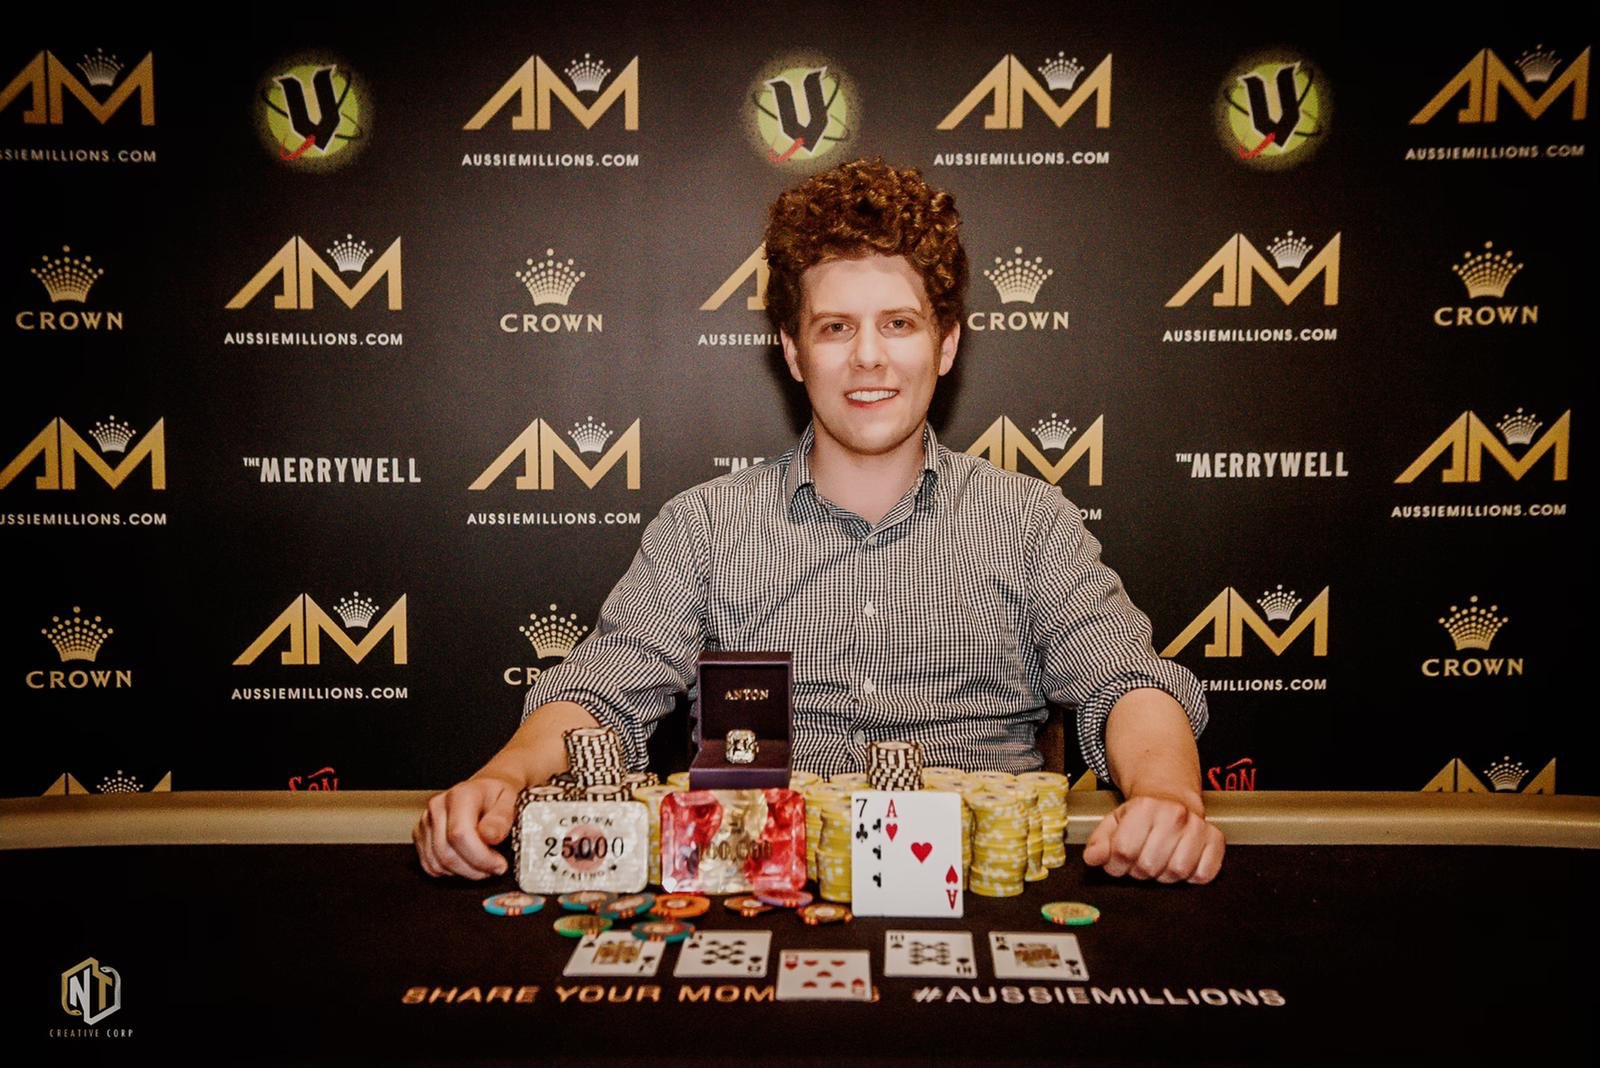 Crown Poker On Twitter Late Last Night Another Winner Was Crowned Huge Congrats To Honorary Australian Ariengelpoker Who Last Night Took Home Yet Another Piece Of Aussiemillions Jewellery By Shipping The Event